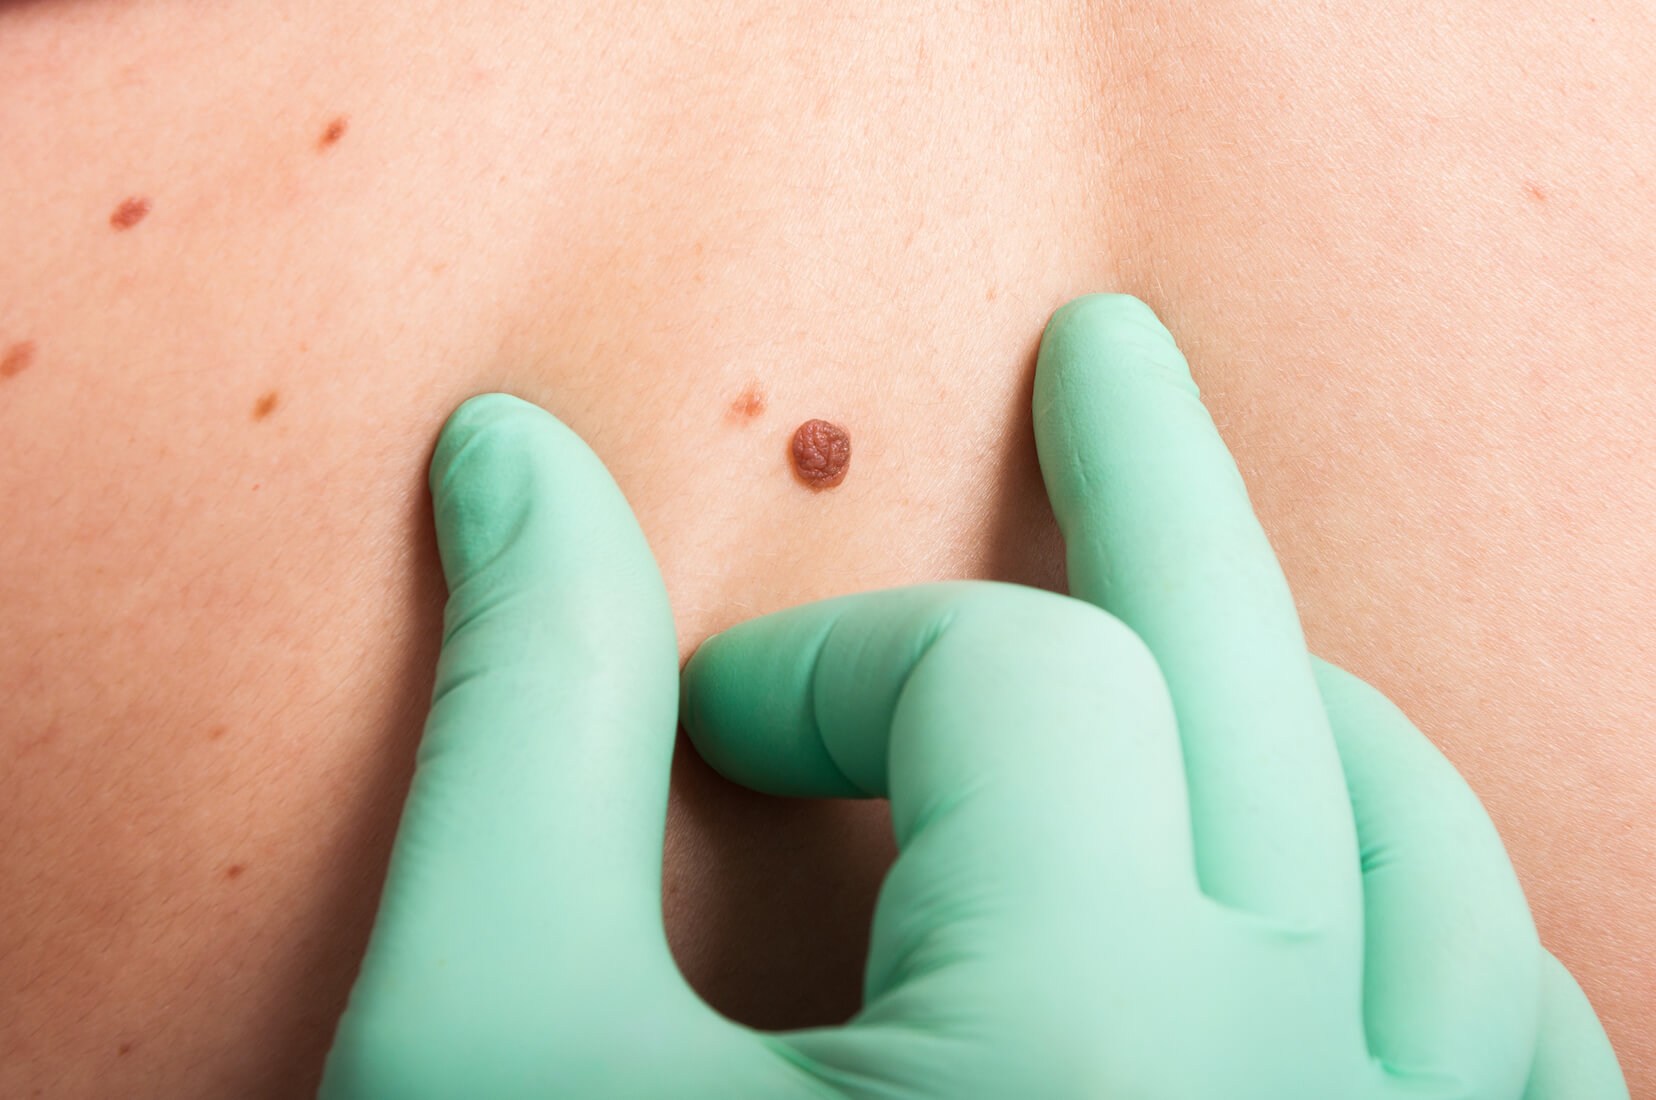 mole removal clinic in Singapore